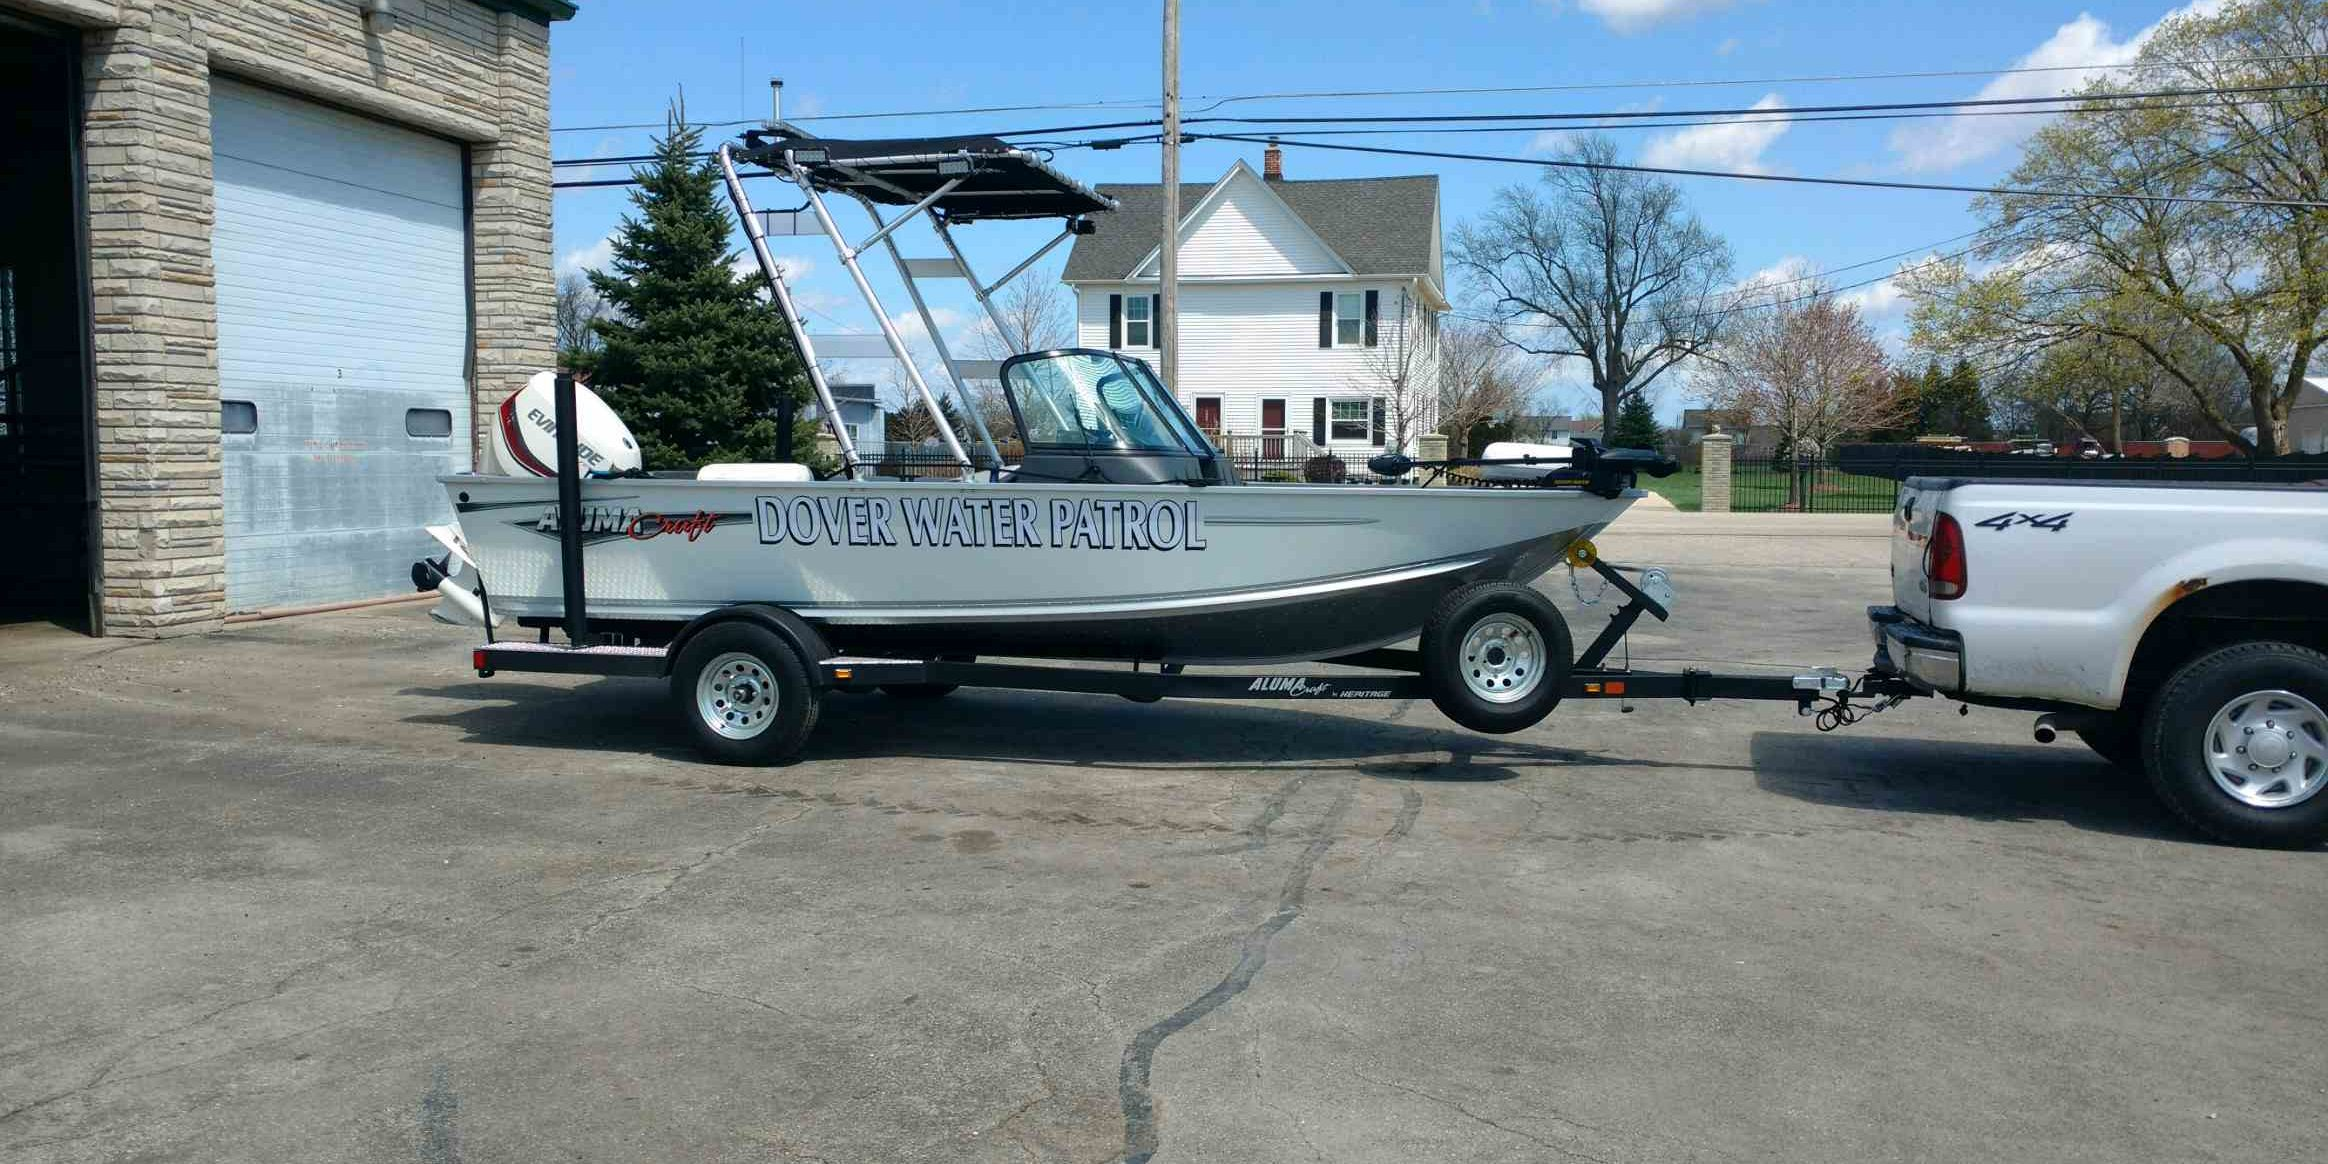 2018waterpatrolboat